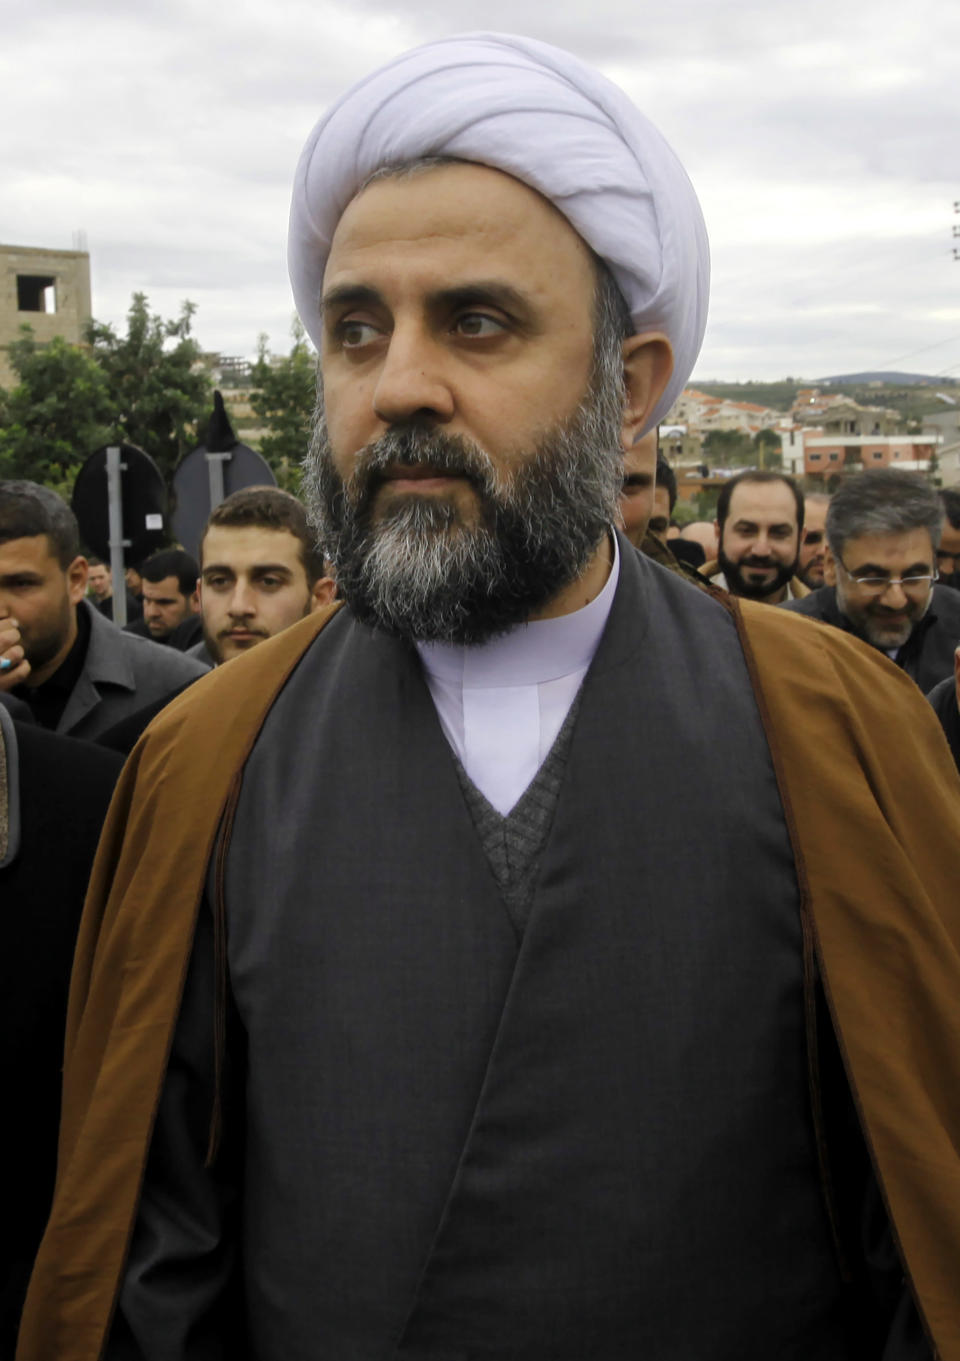 In this January 26, 2010, Sheik Nabil Qaouk a member of Hezbollah's Central Council, attends the funeral of prominent businessman Hassan Tajeddine in the southern village of Hanaway, Lebanon. On Friday, Oct. 23, 2020, the U.S. Treasury has sanctioned two high-ranking Hezbollah officials, Nabil Qaouk and Hassan al-Baghdadi, both members of Hezbollah's Central Council. The Council is responsible for electing members of the group's top decision-making body, the Shura Council. (AP Photo/Hussein Malla)